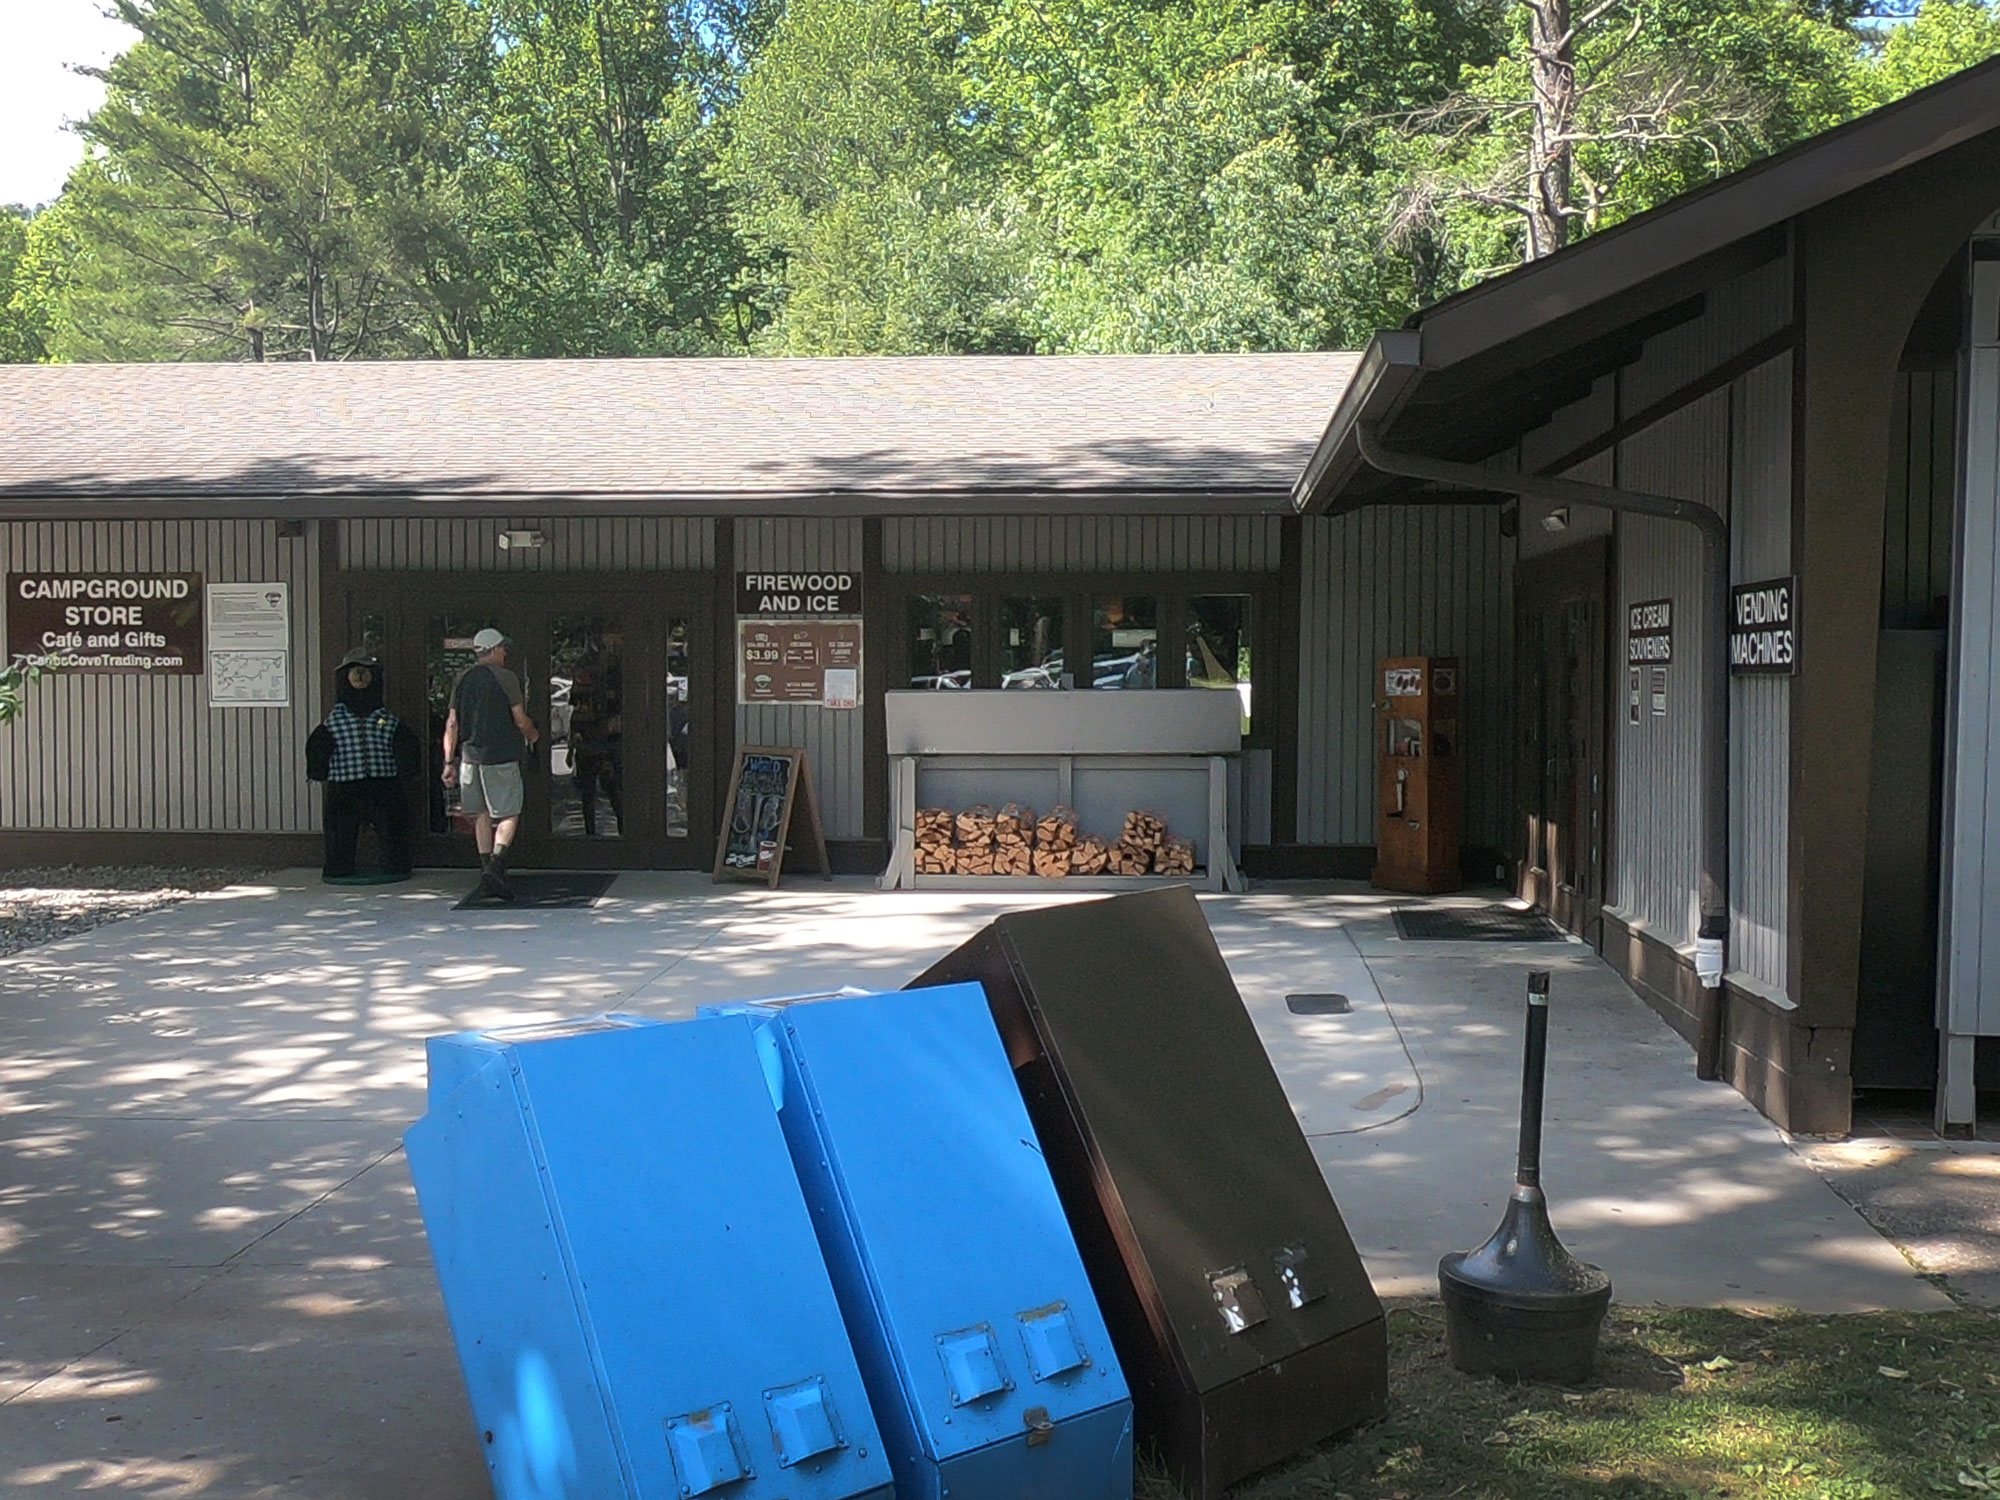 Cades Cove Trading Post Campground Store at Great Smoky Mountains National Park, Tennessee